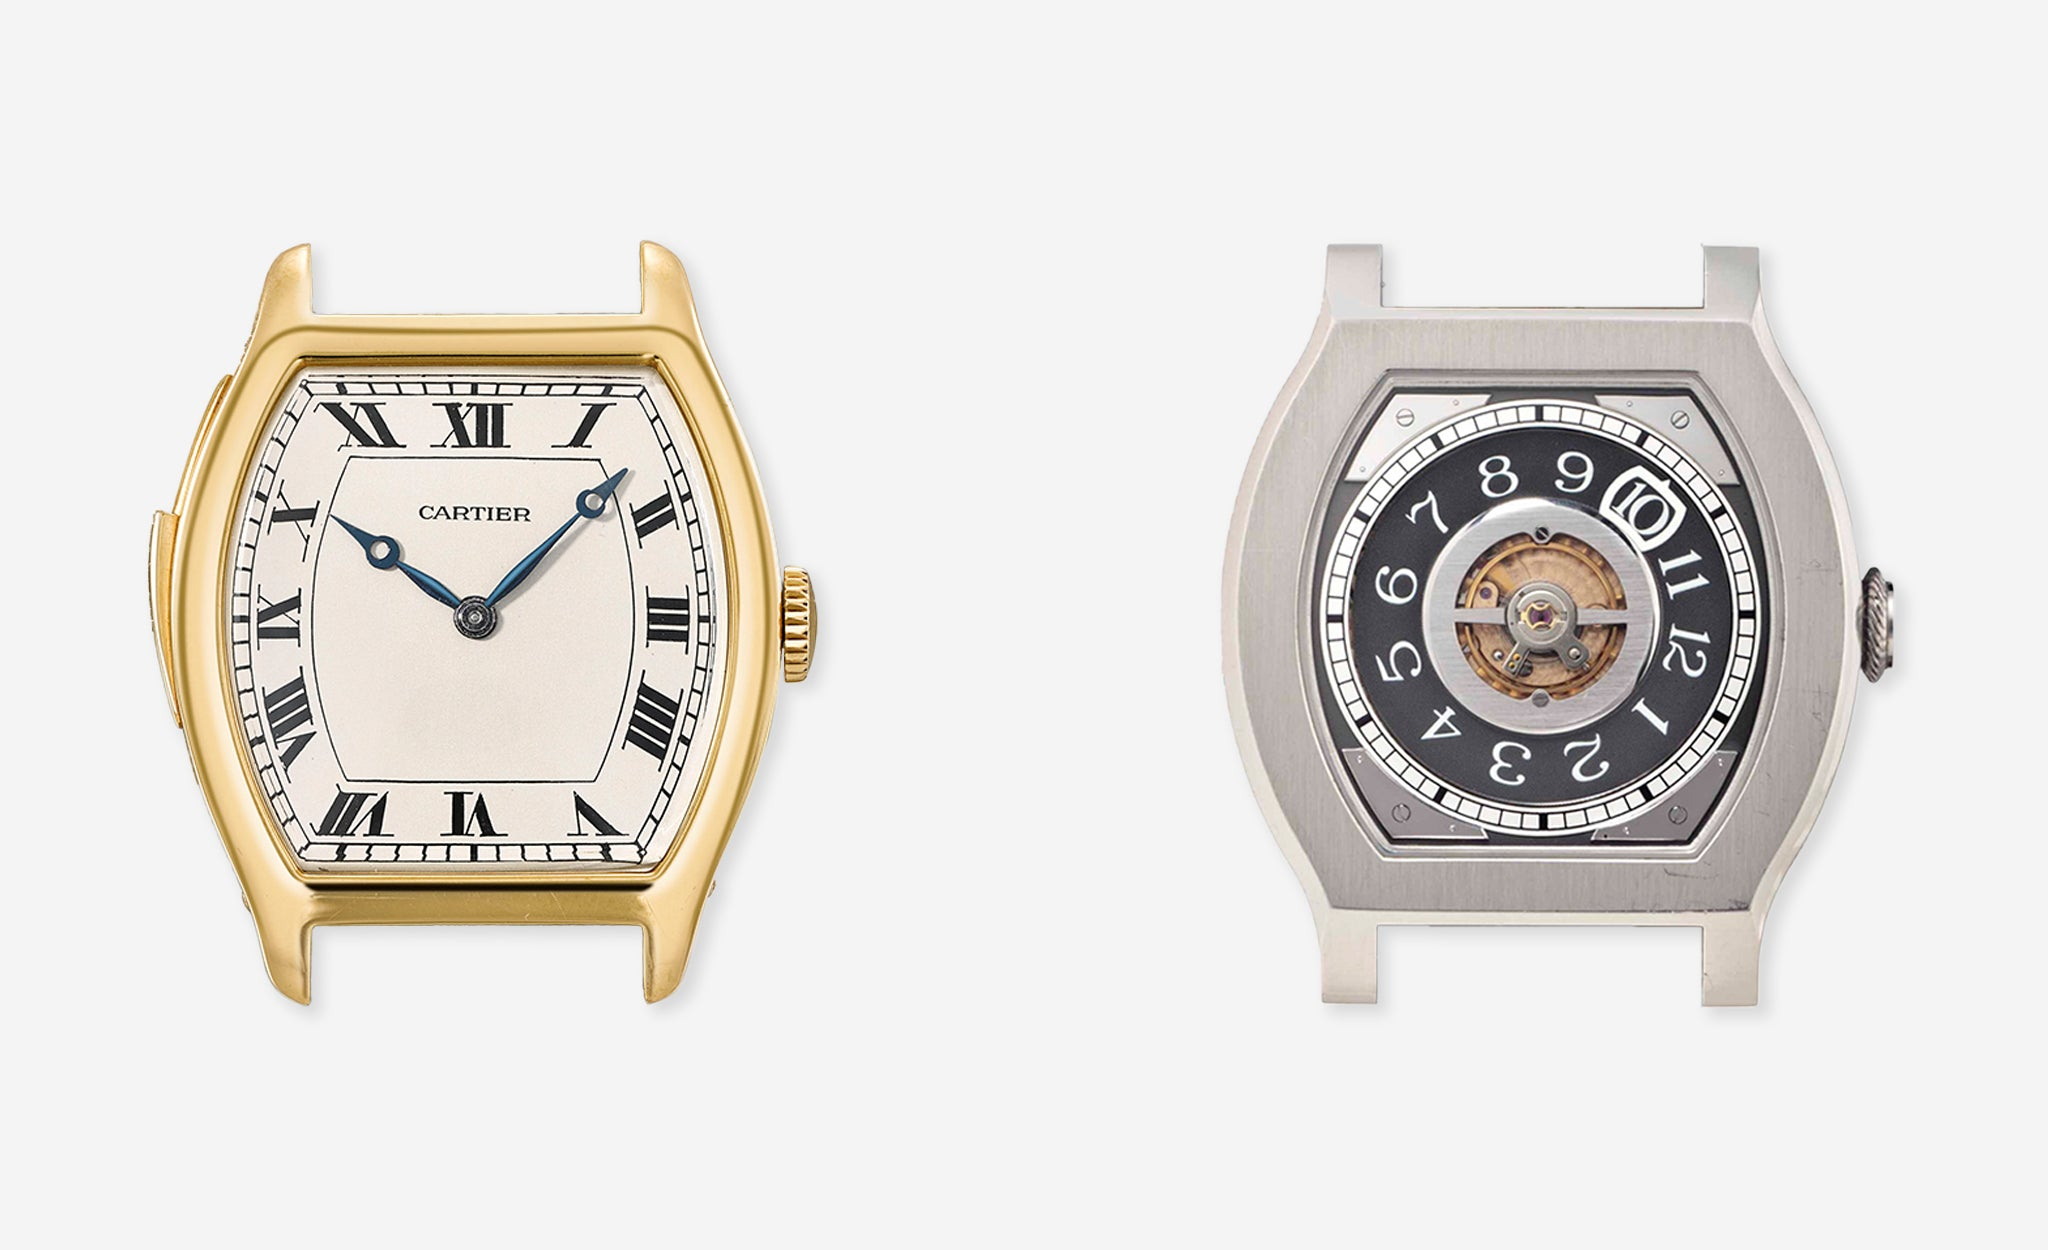 Cartier torue minutre repeater and F.P. Journe Vagabondage I in Three Watchmakers' Unfinished Watches for A Collected Man London